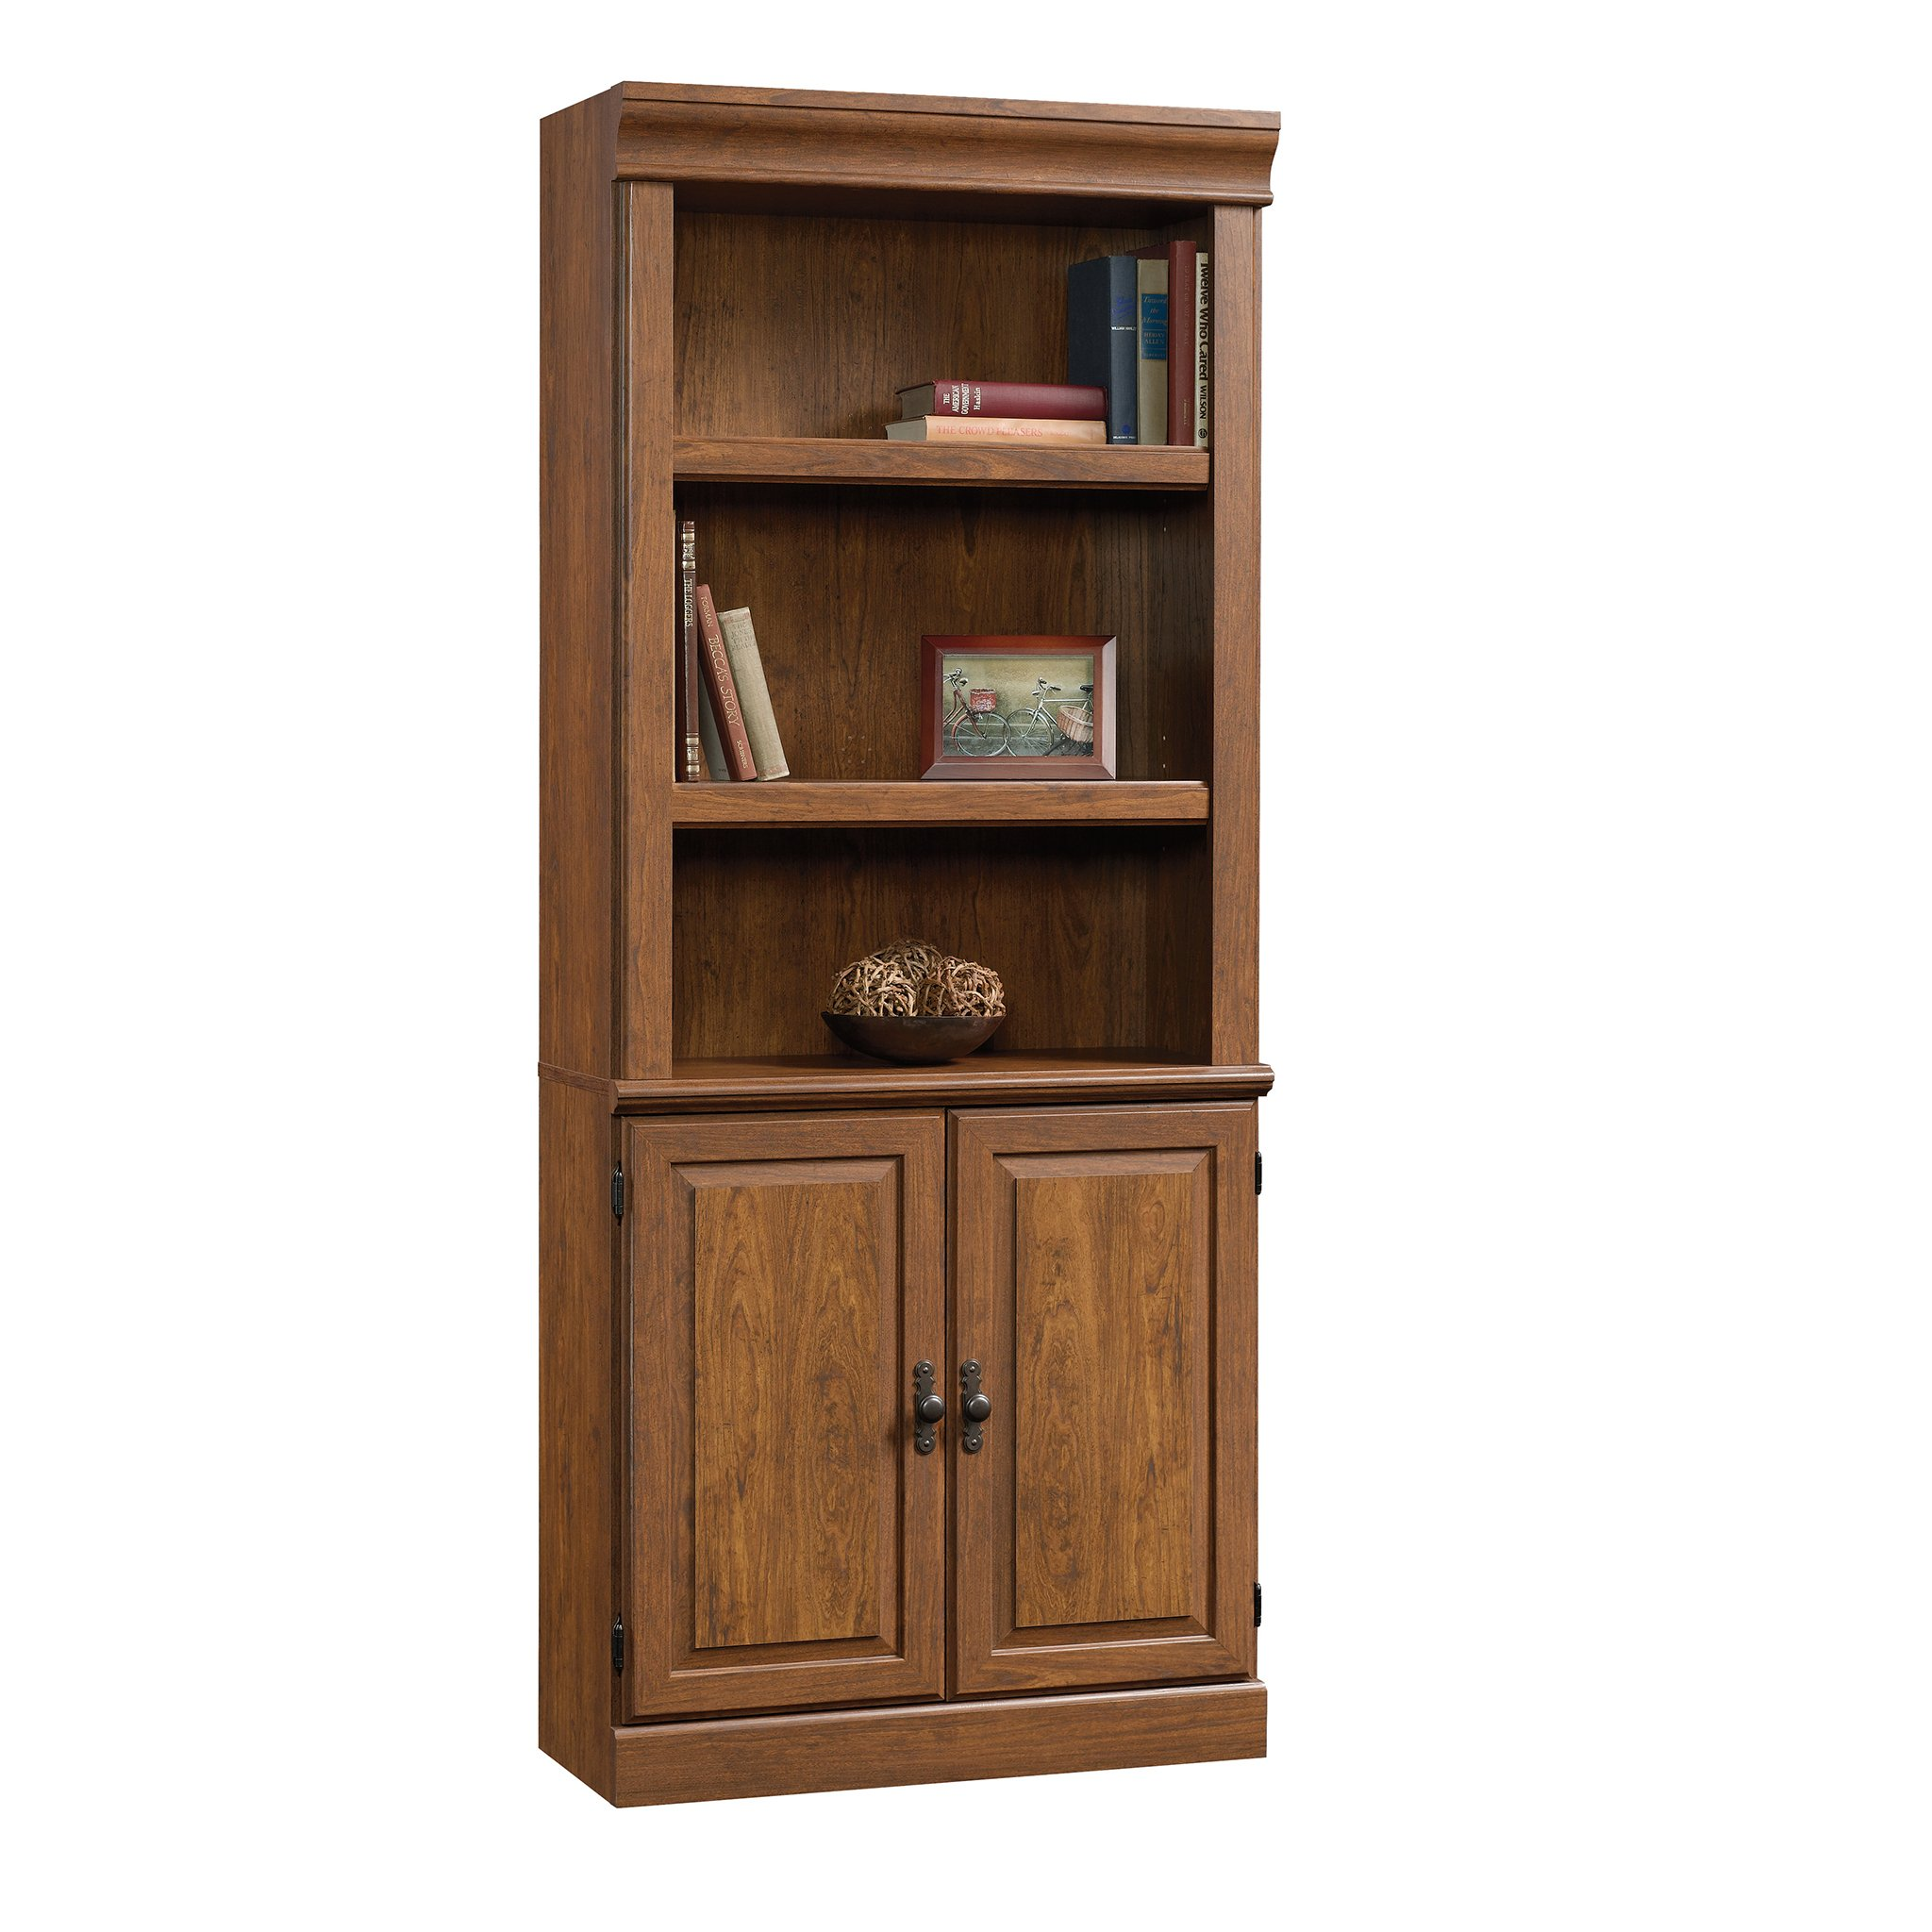 Sauder 418734 Orchard Hills Library with Doors, L: 29.45'' x W: 13.47'' x H: 71.50'', Milled Cherry finish